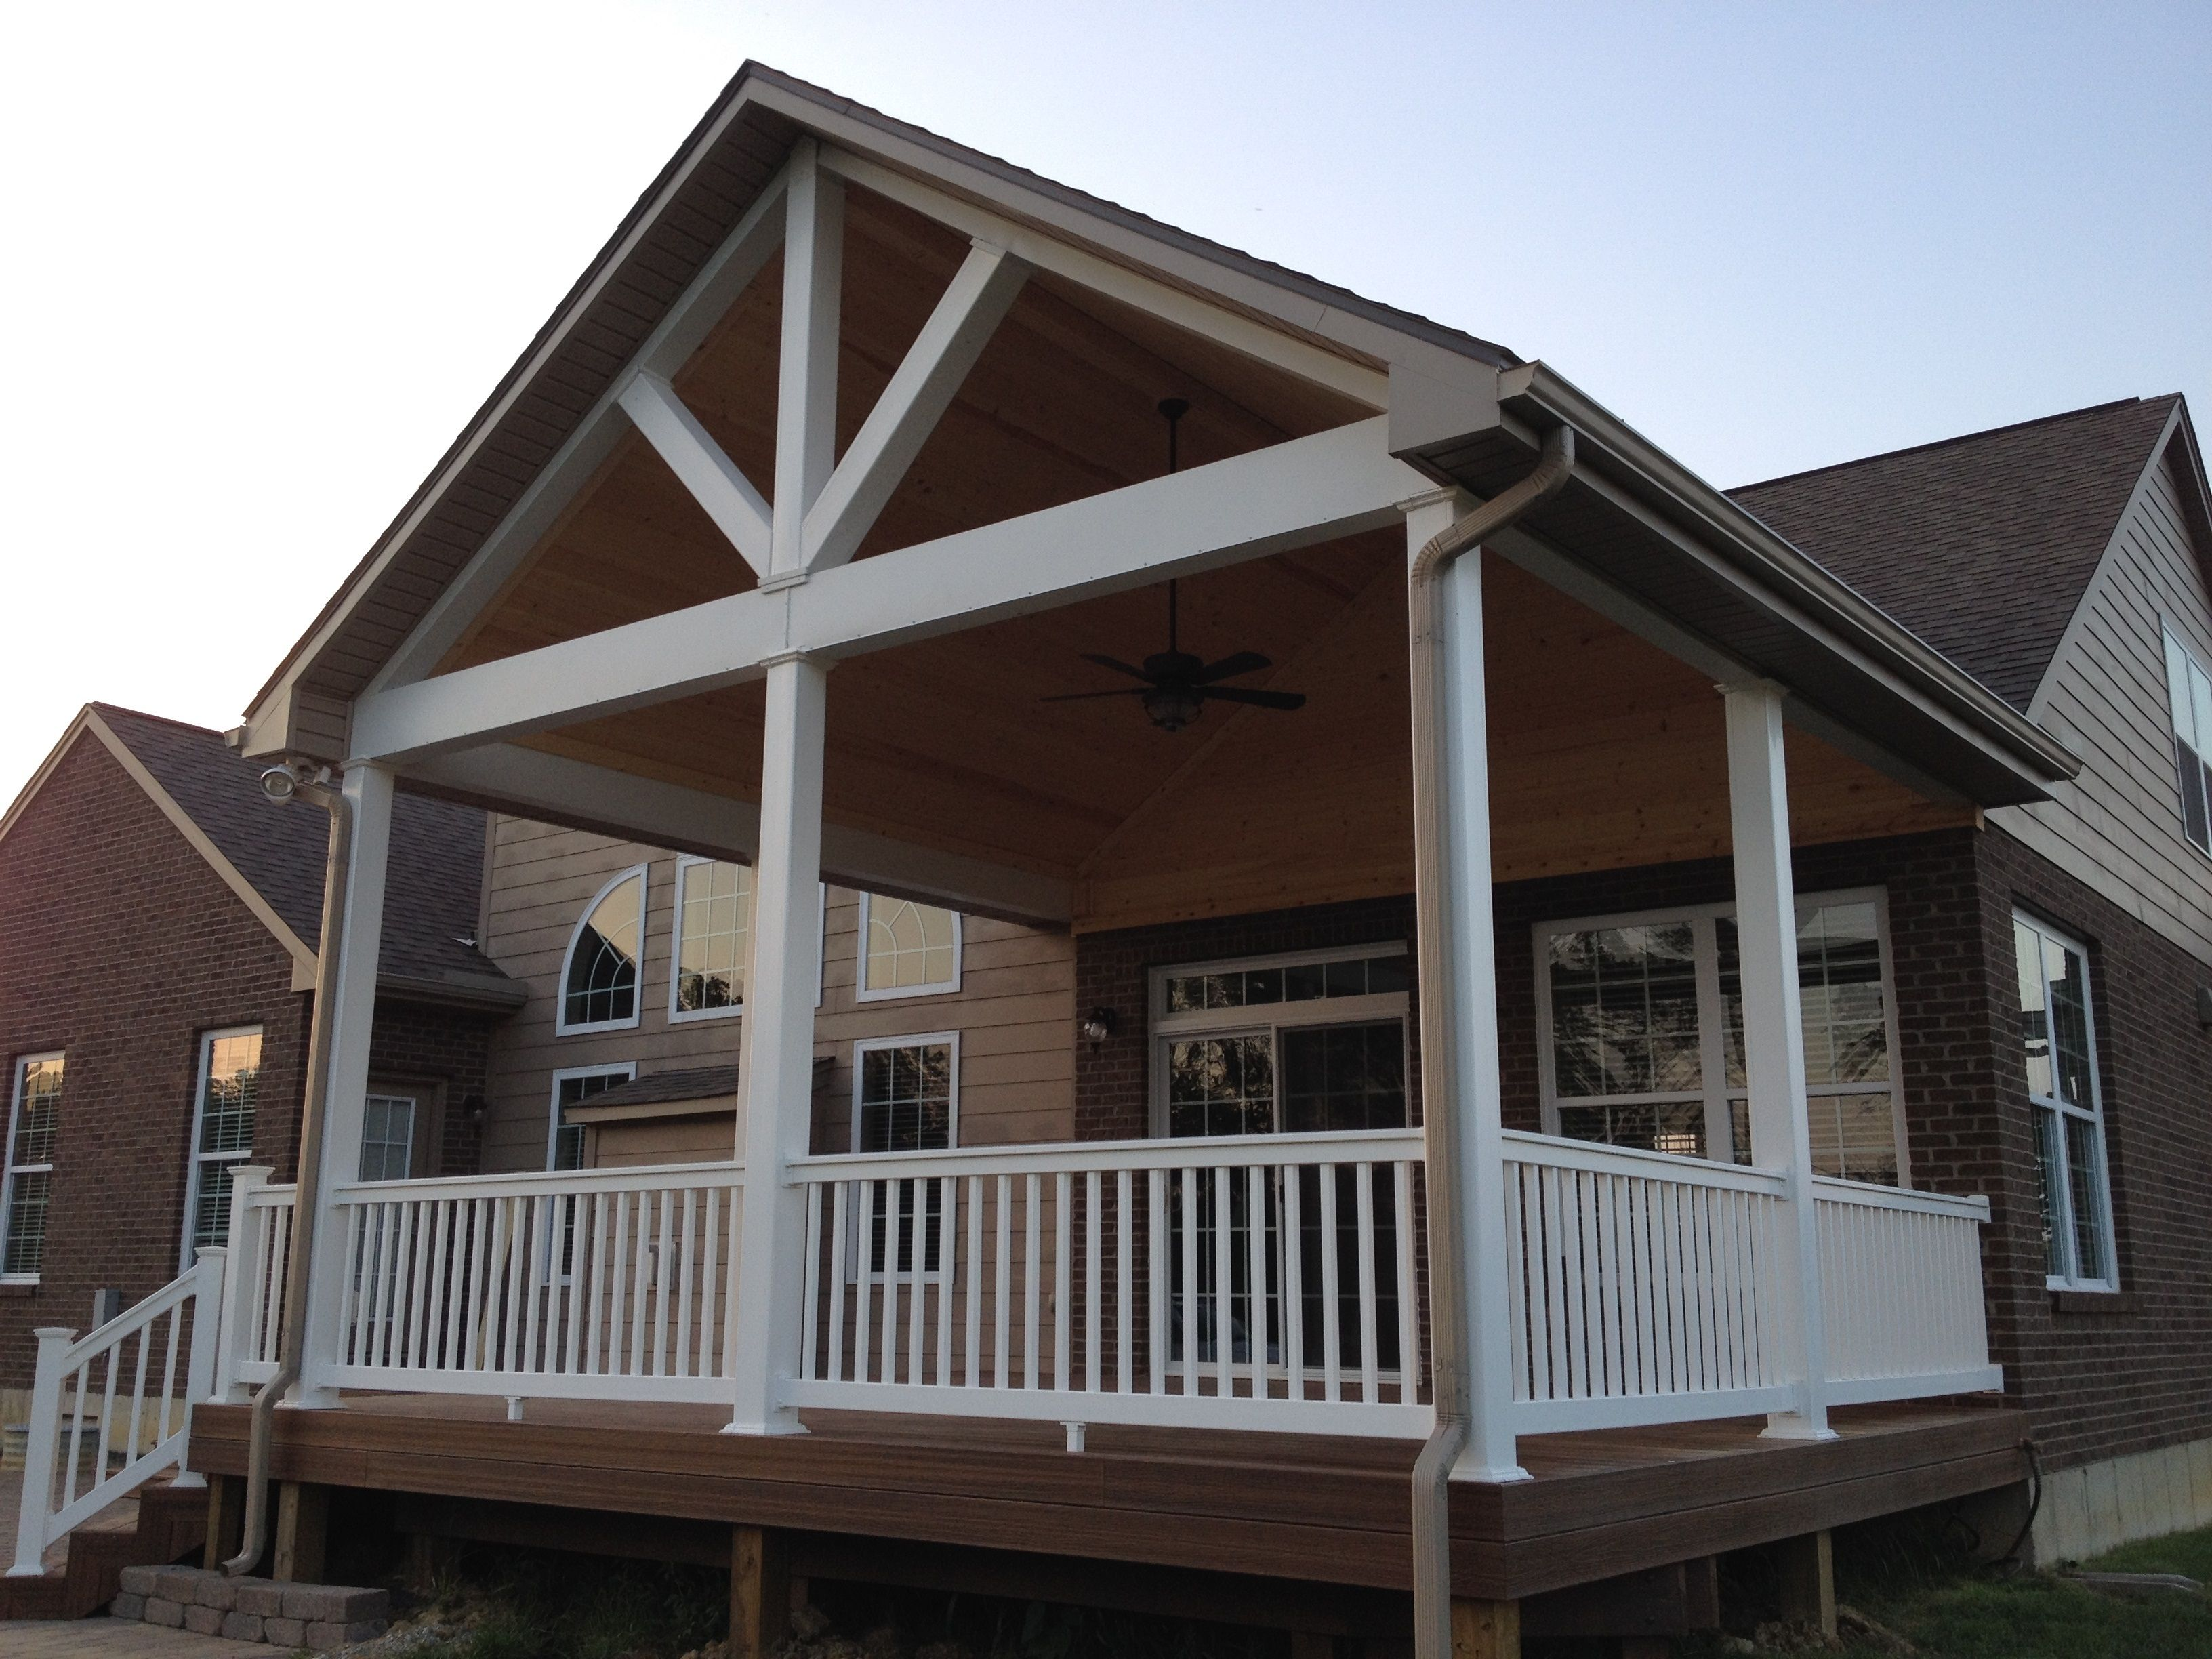 Image Result For Gable Deck Cover House With Porch Porch Roof Porch Roof Design